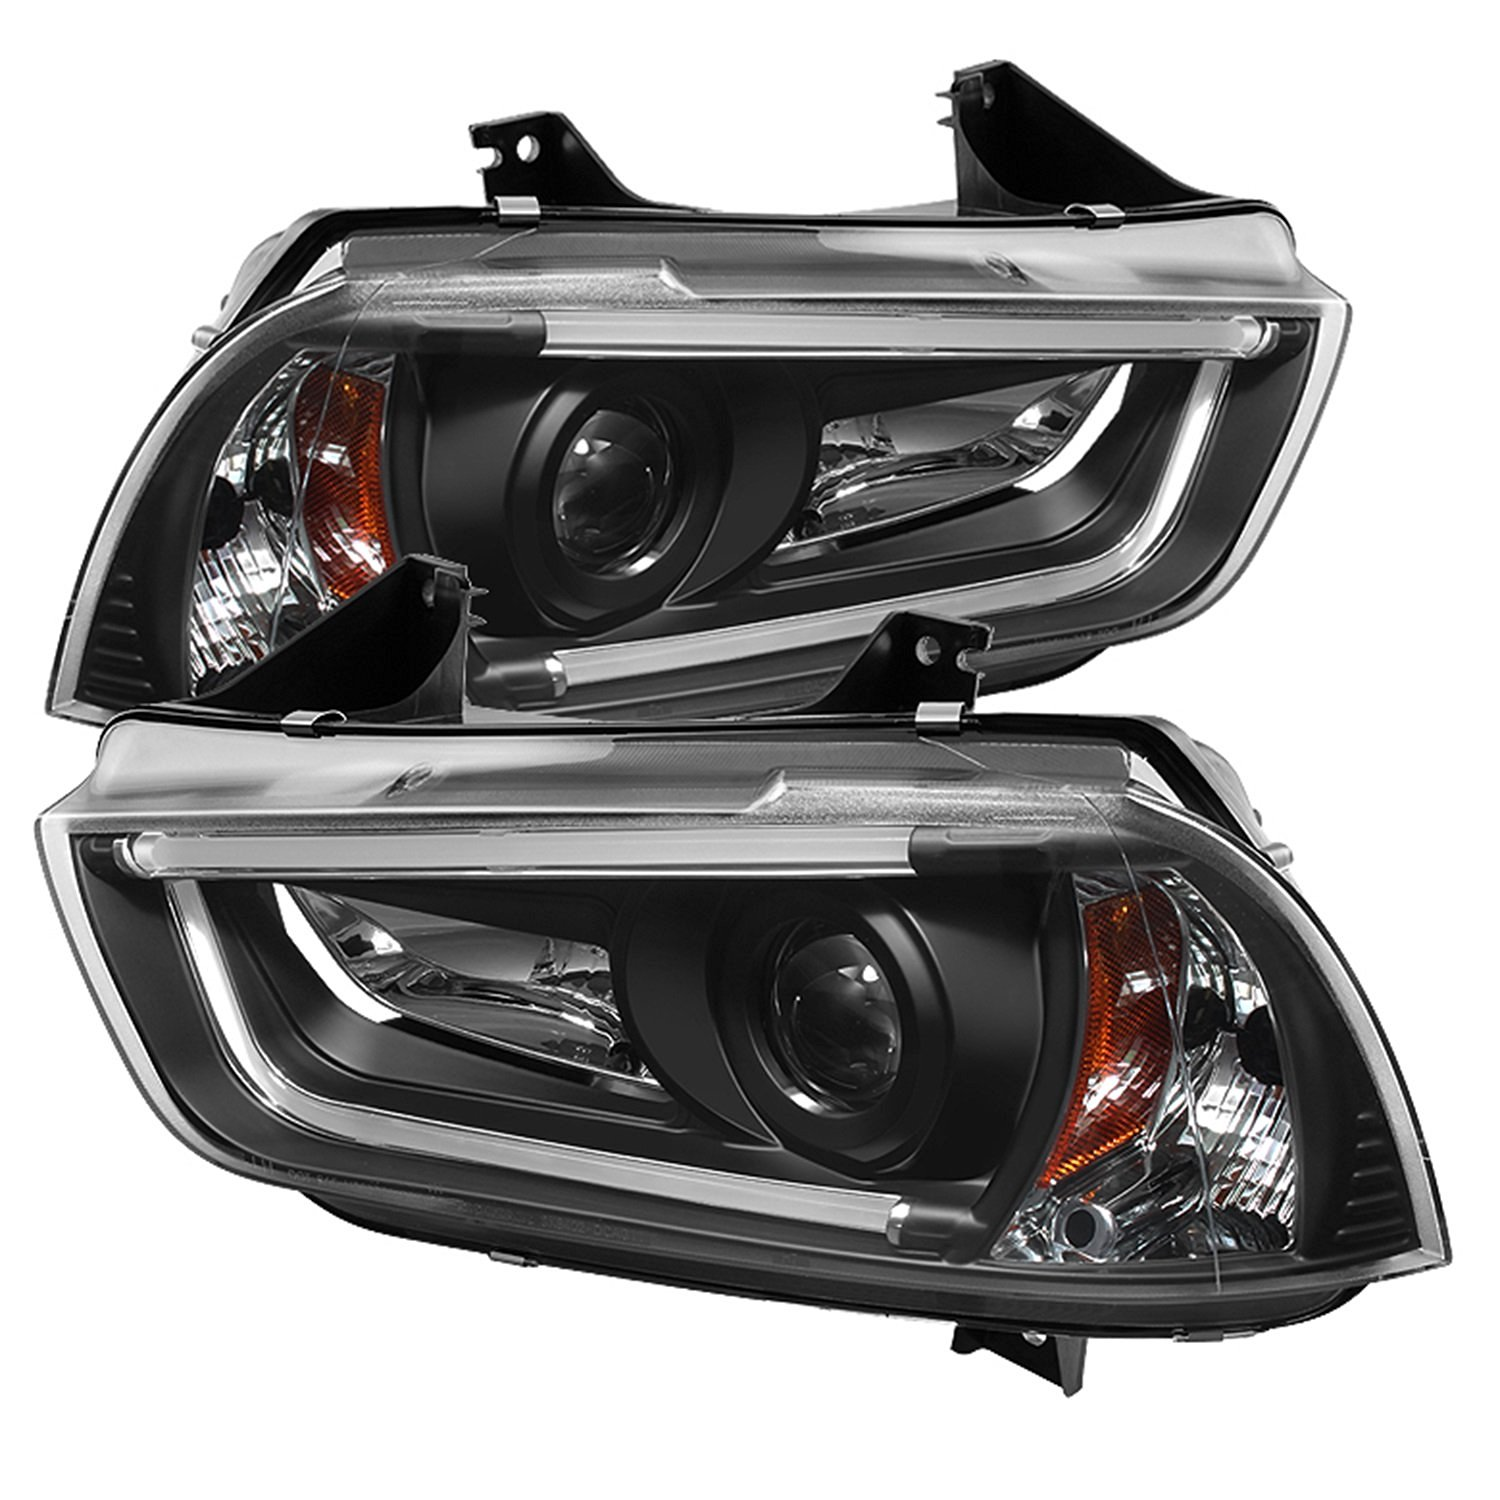 Spyder Auto (PRO-YD-DCH11-LTDRL-HID-BK) Dodge Charger Projector Headlight